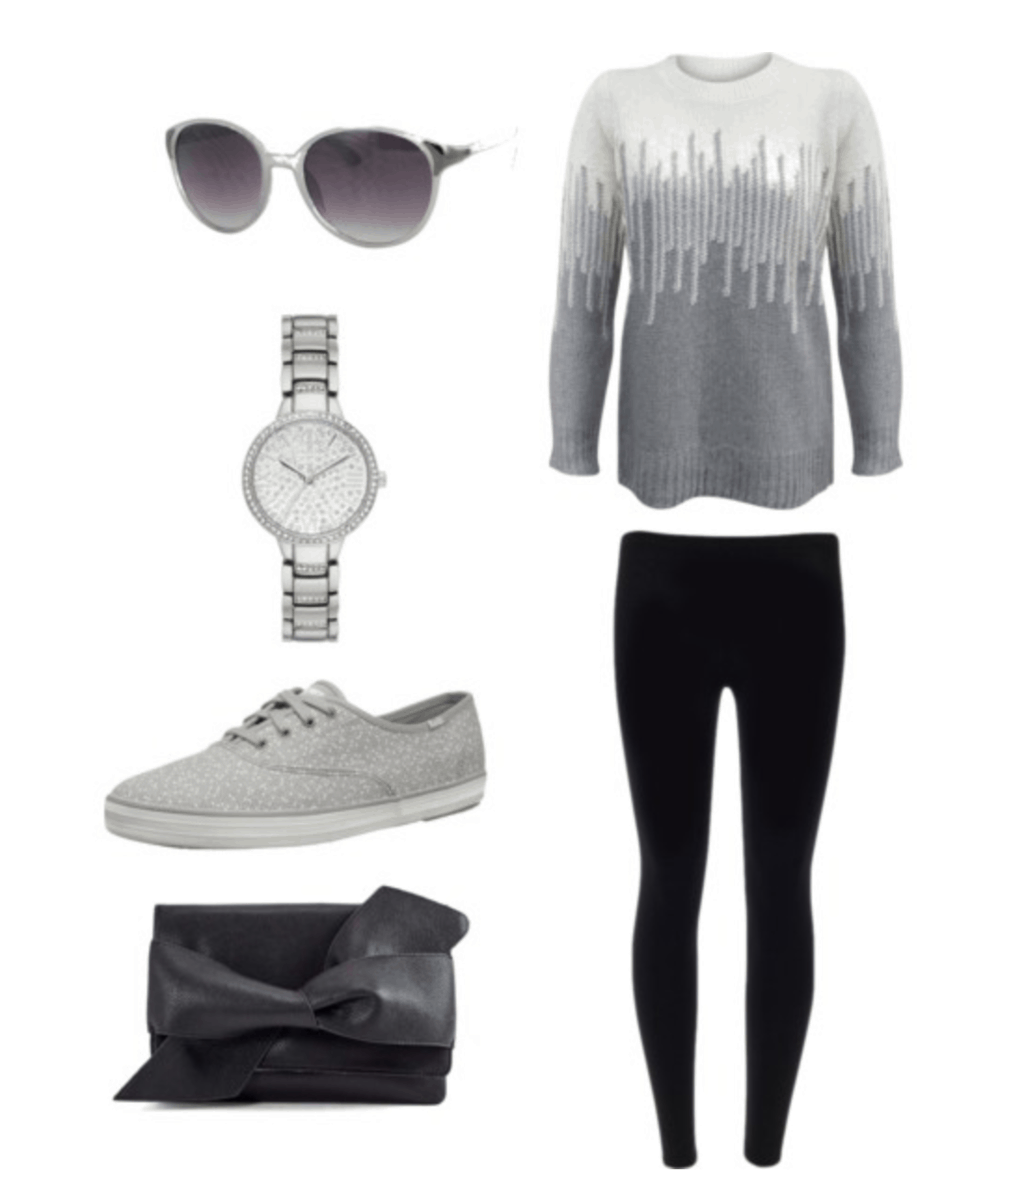 Cute everyday outfit: Black leggings, gray and white sweater, gray Keds sneakers, black bow clutch, silver watch, silver sunglasses